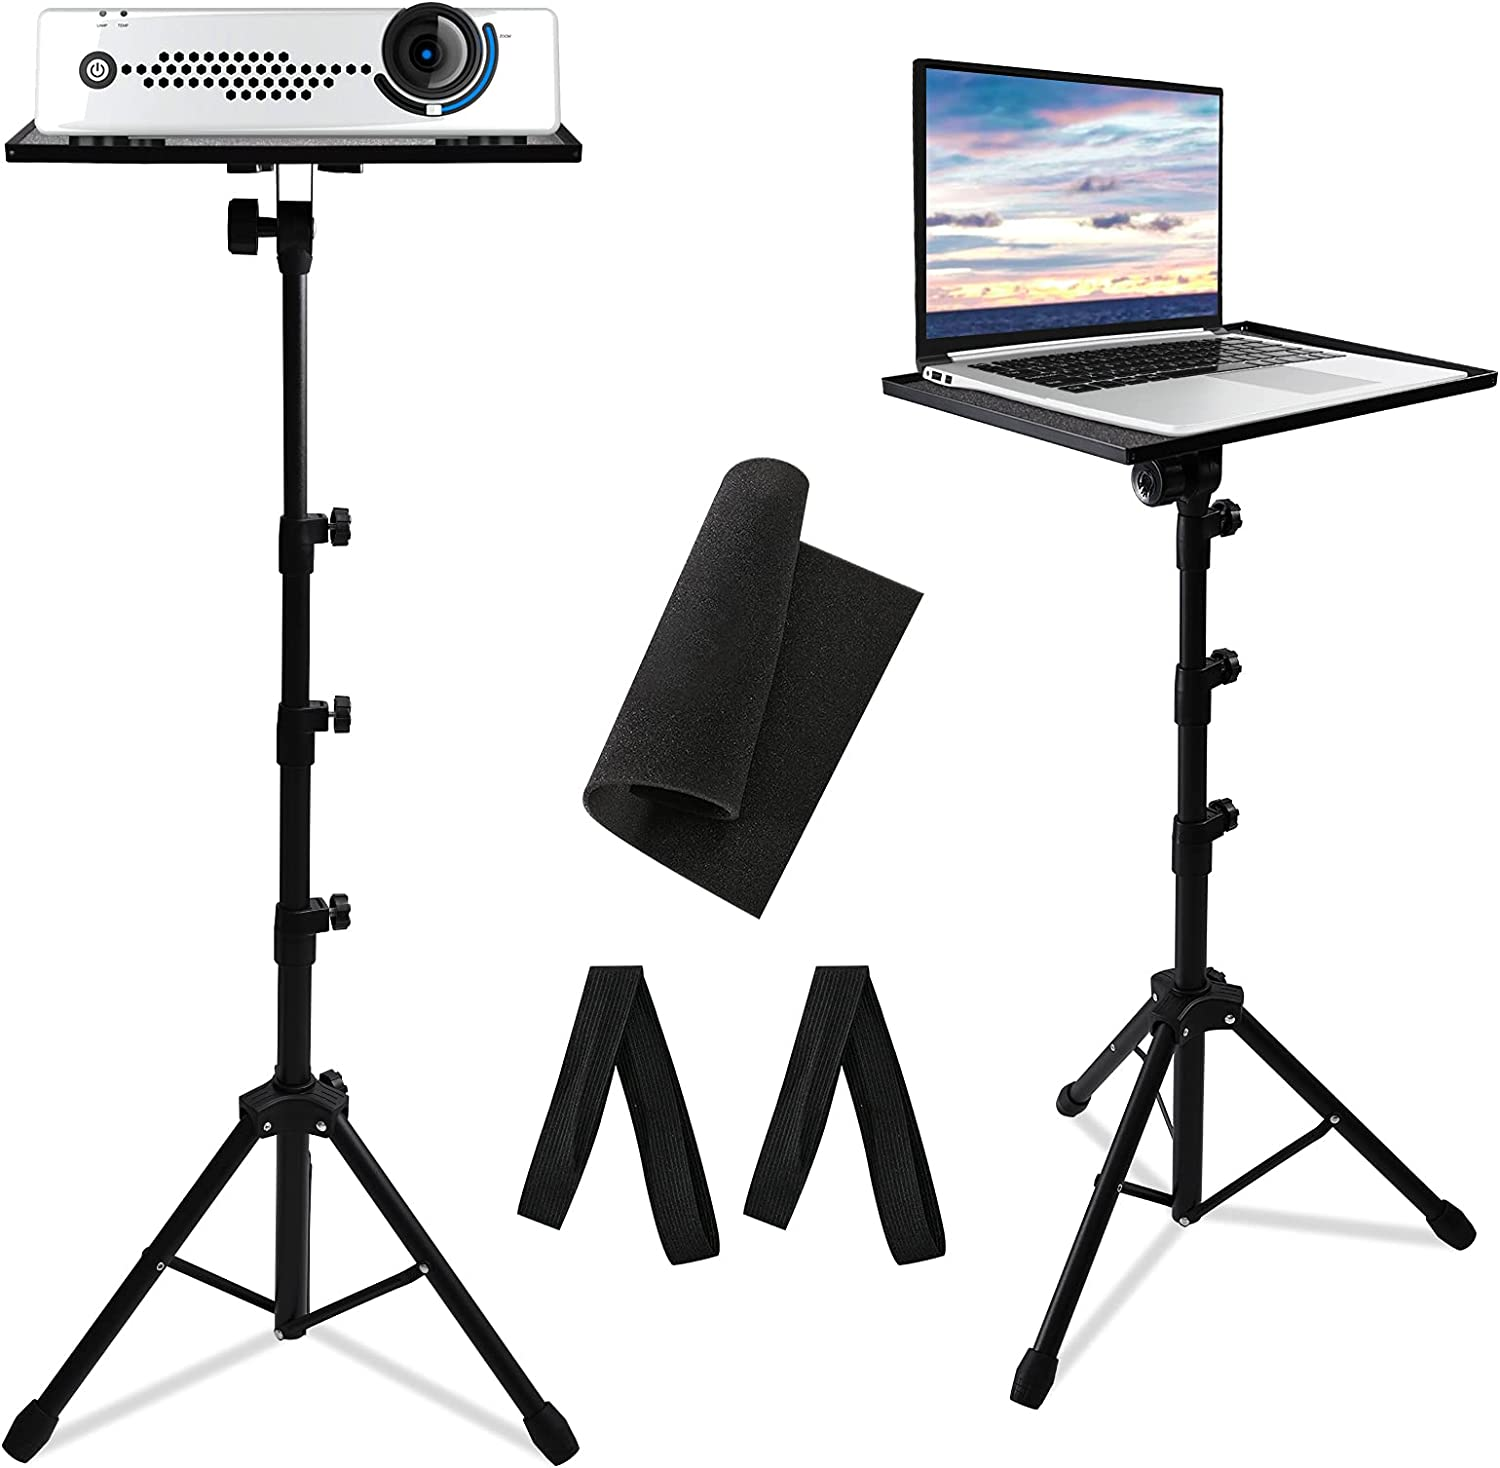 Projector Tripod Stand with Adjustable Height 23 to 63 Inch- Foldable Universal Laptop Tripod Stand Tall, Portable Computer DJ Device Tripod for Home, Office, Stage or Studio